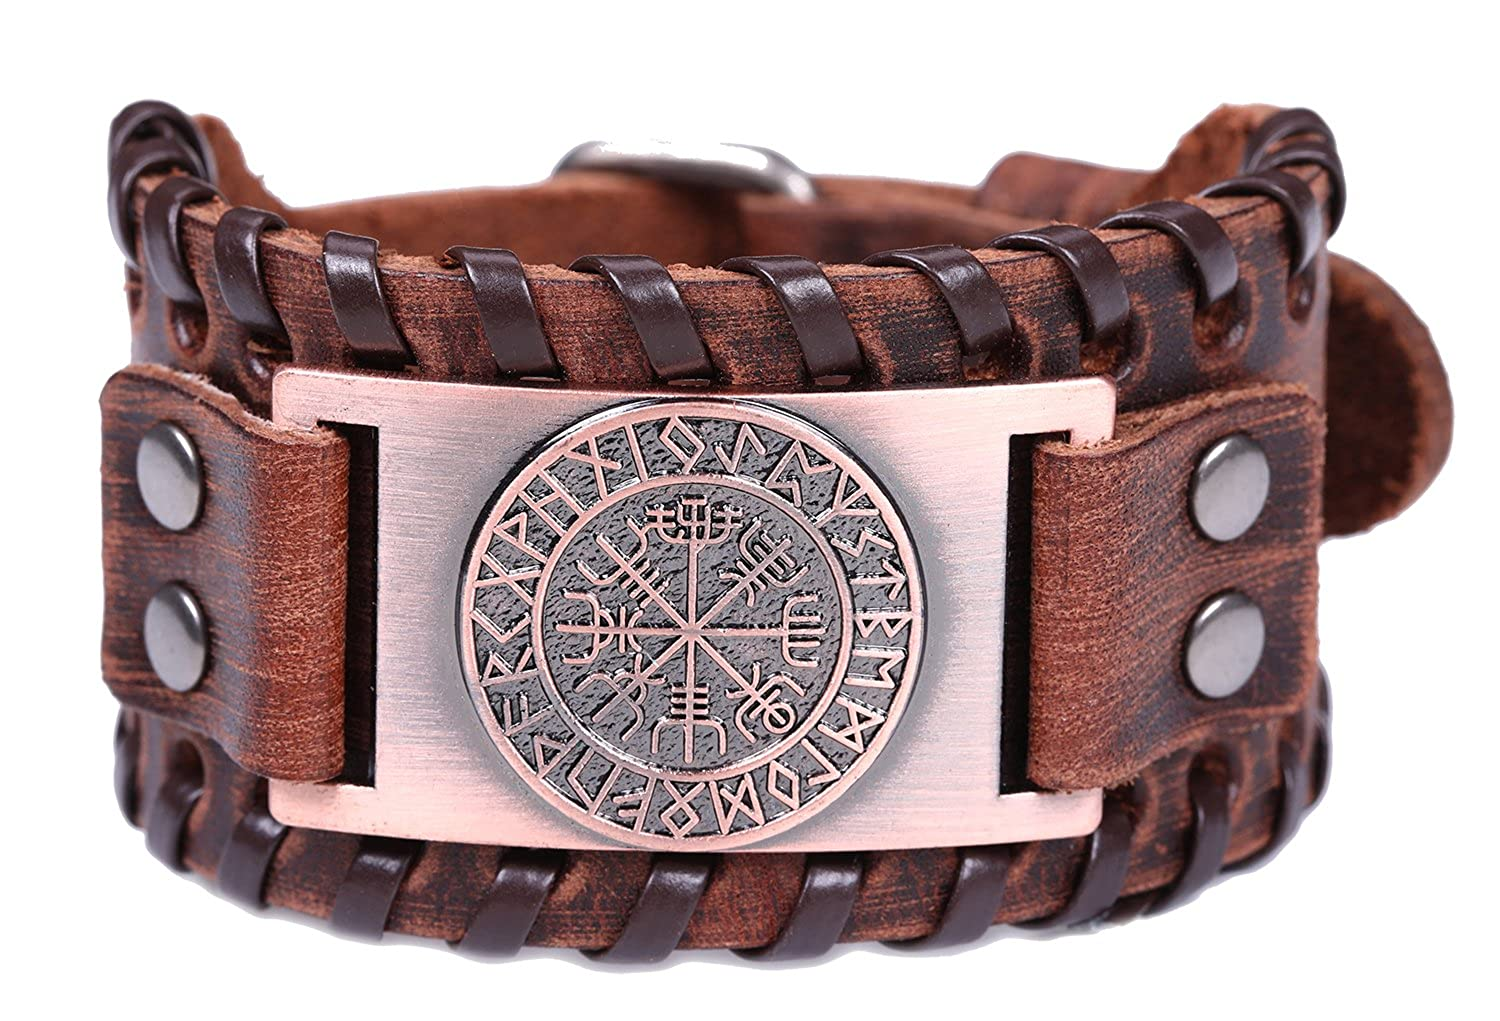 VASSAGO Vintage Nordic Viking Runes Wicca Vegvisir Compass Charm Brown Belt Buckle Bracelet Antique Brown) YiYou